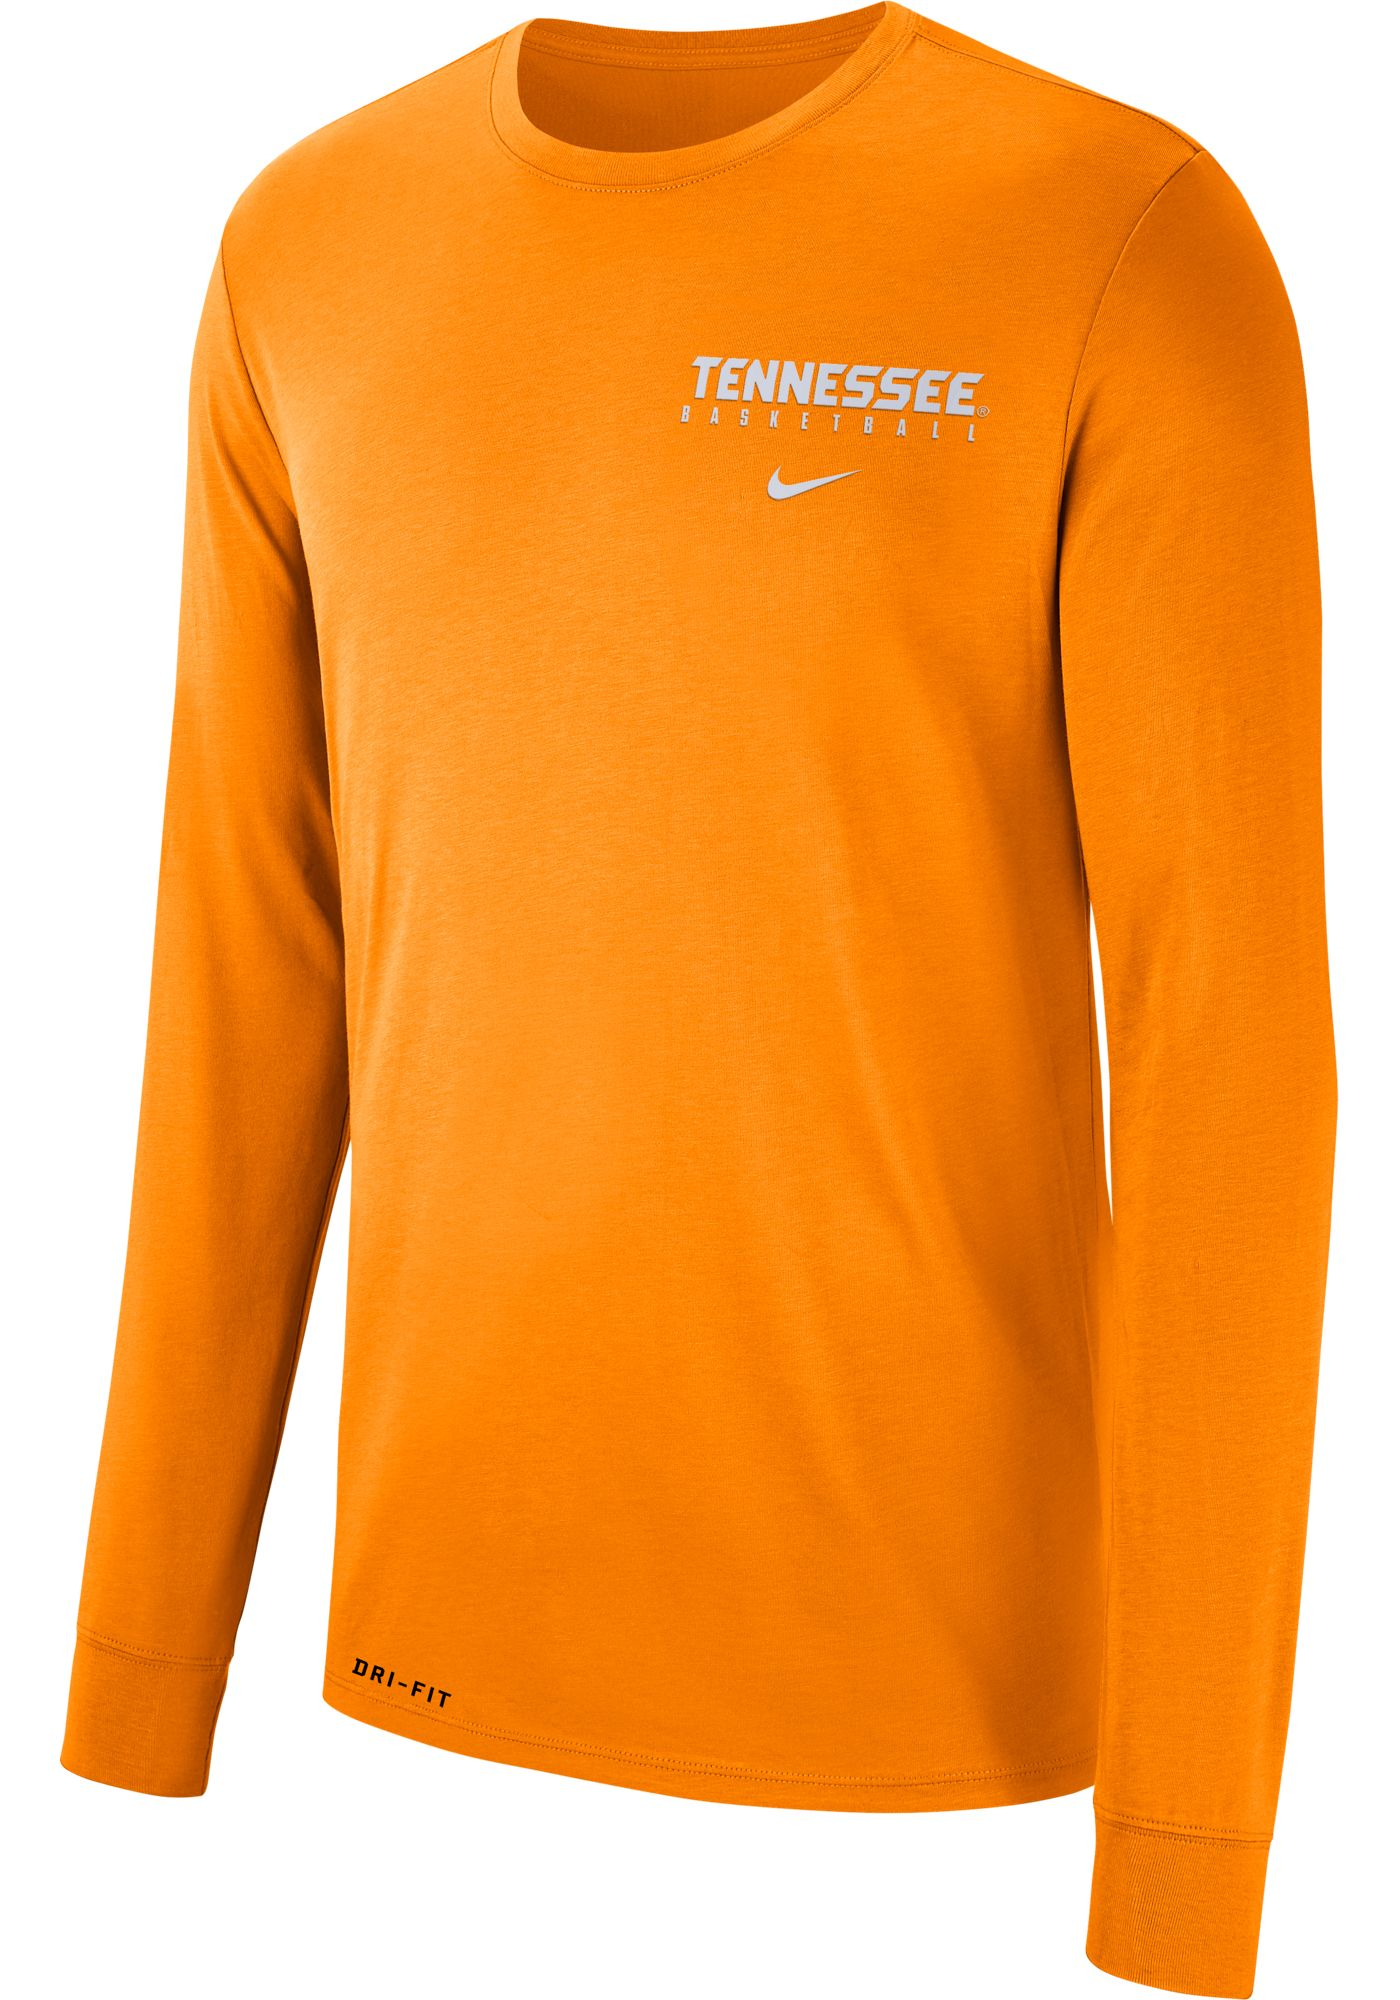 Nike Men's Tennessee Volunteers Tennessee Orange Dri-FIT Cotton Basketball Long Sleeve T-Shirt